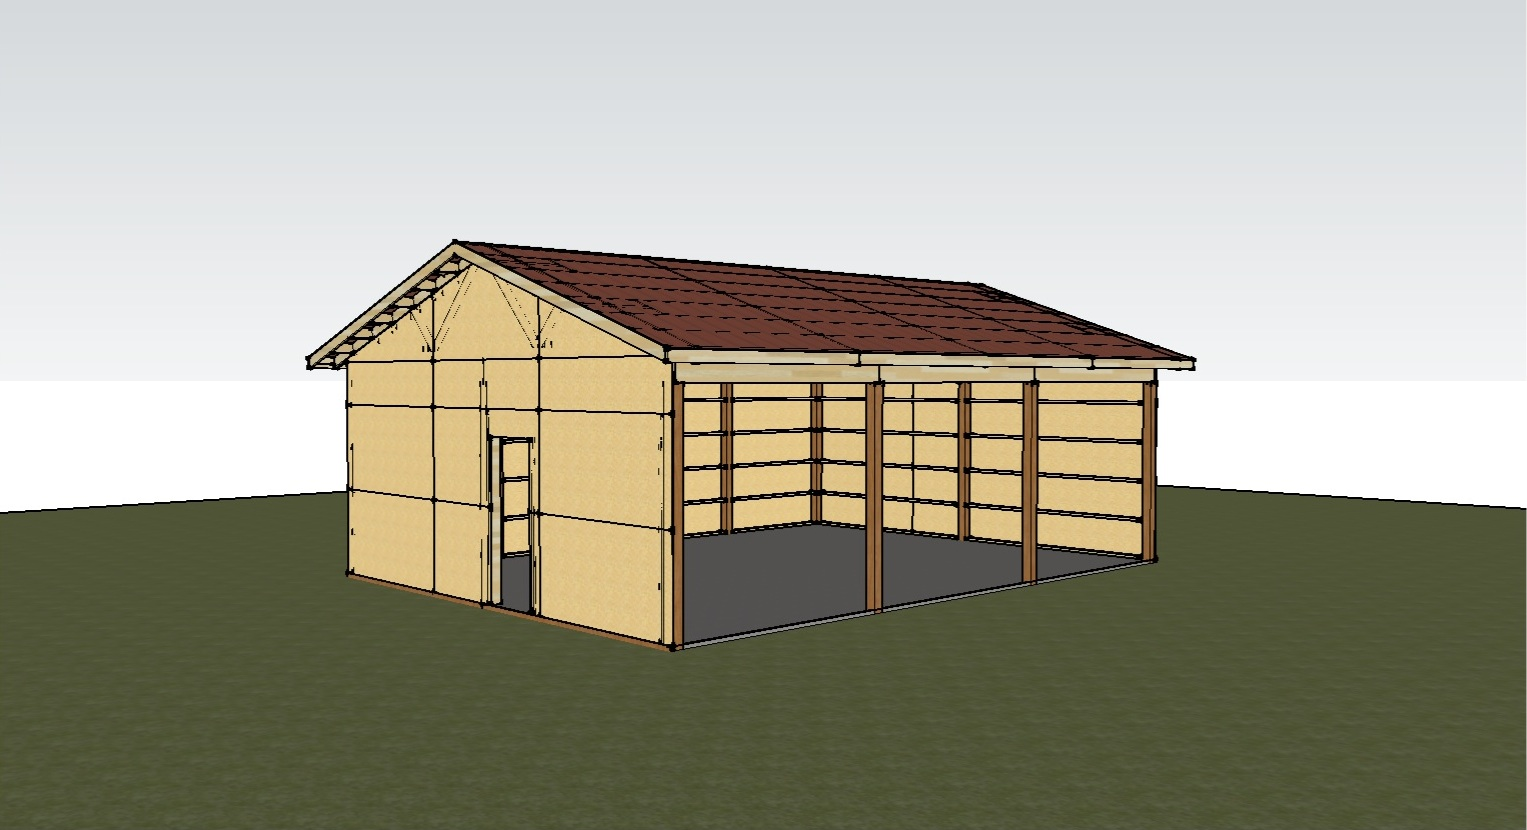 Pole barn plans and materials redneck diy for Pole barn house plans